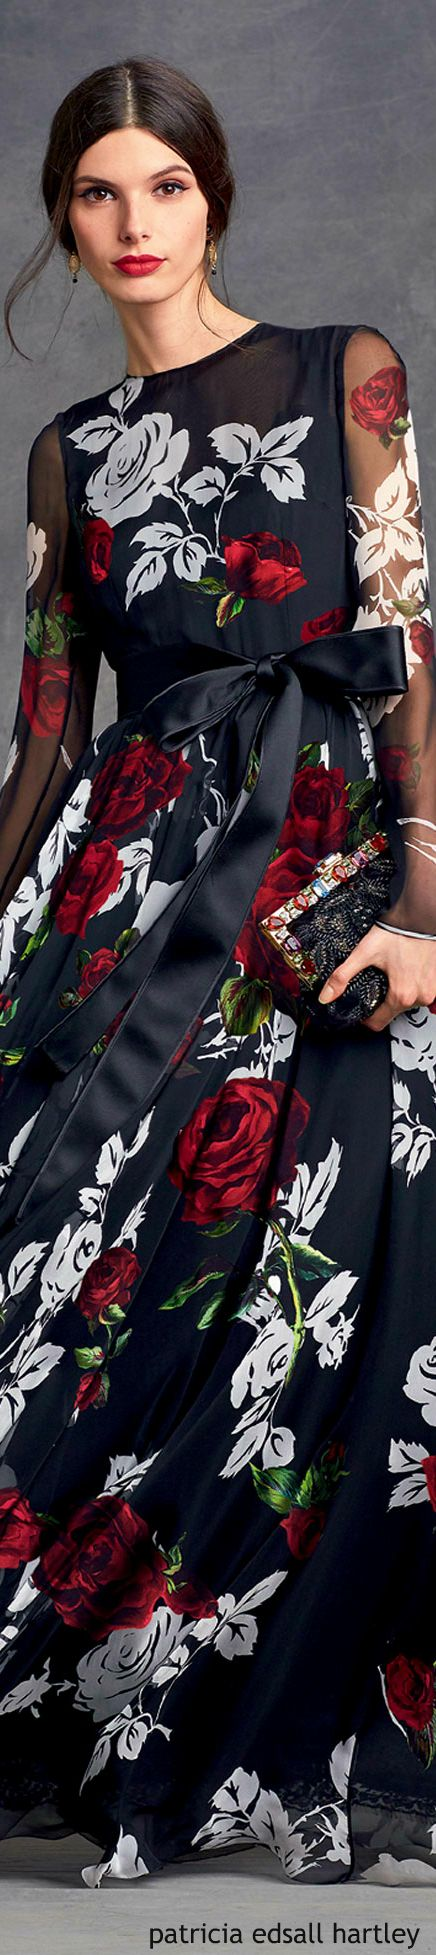 Black dress with touch of red - Outfit Inspiration Black Dress With Red And White Rose Pattern Black Sparkly Clutch